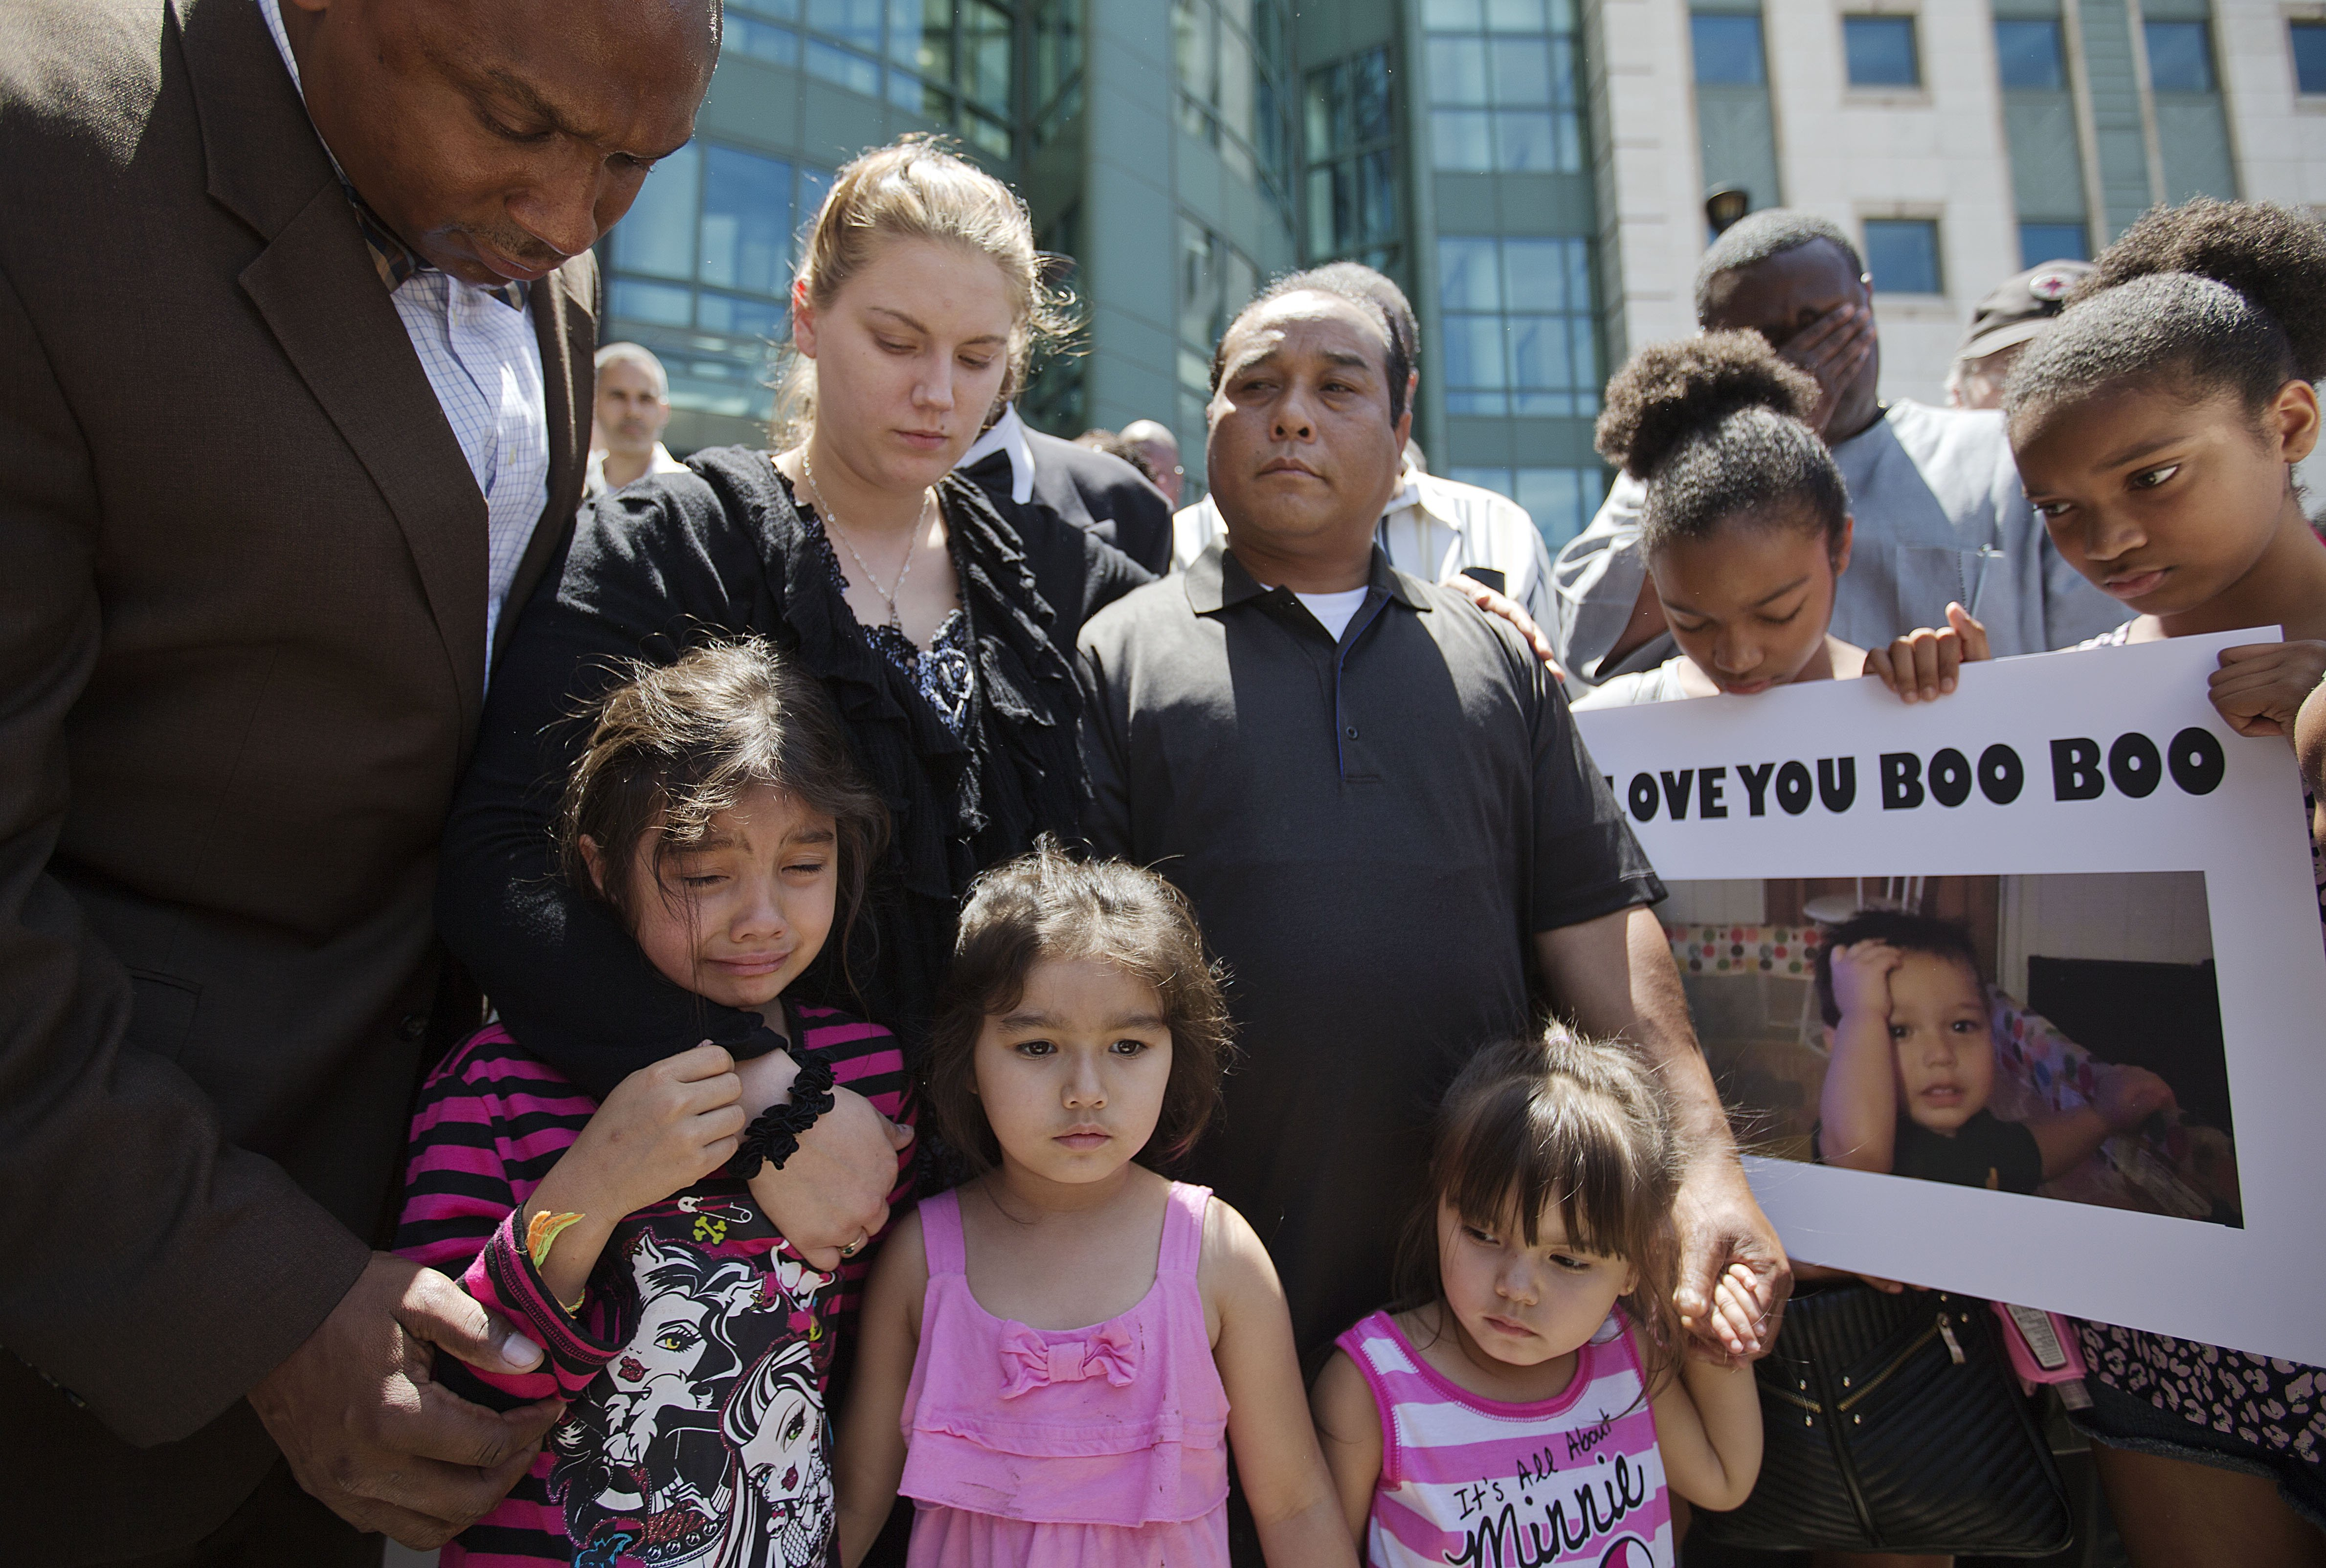 Alecia and Boun Khan Phonesavanh (center), the parents of 19-month-old Bounkham Phonesavanh who was severely burned by a flash grenade during a SWAT drug raid, attend a vigil with their daughters outside Grady Memorial Hospital where he is undergoing treatment, on June 2, 2014, in Atlanta.